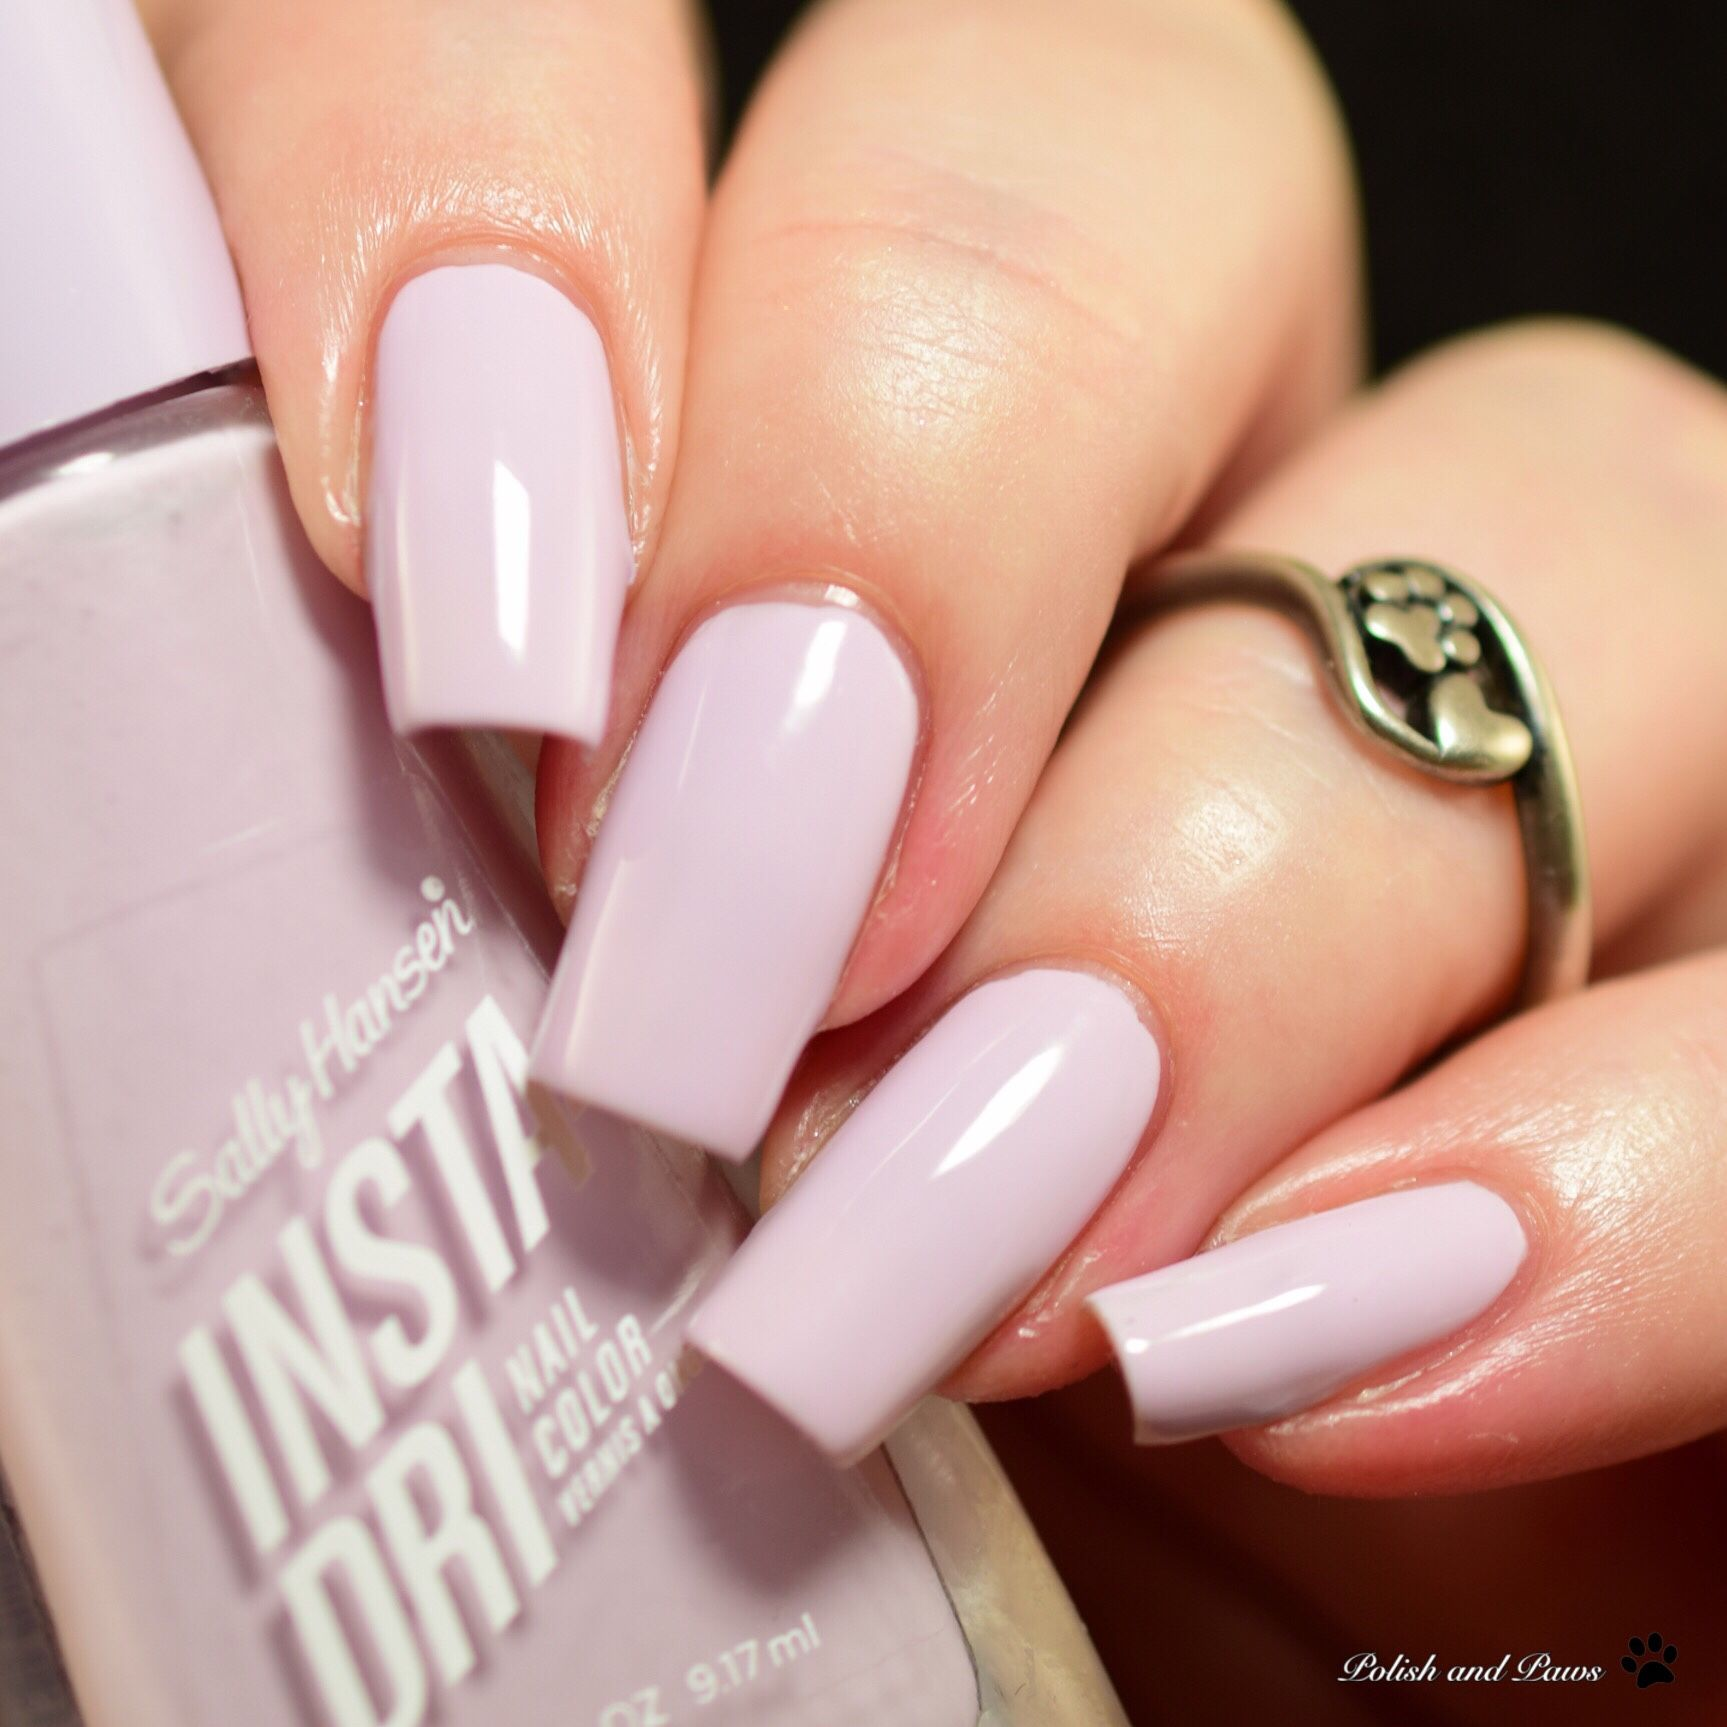 Sally Hansen InstaDri Heather Hustle Sally hansen nail